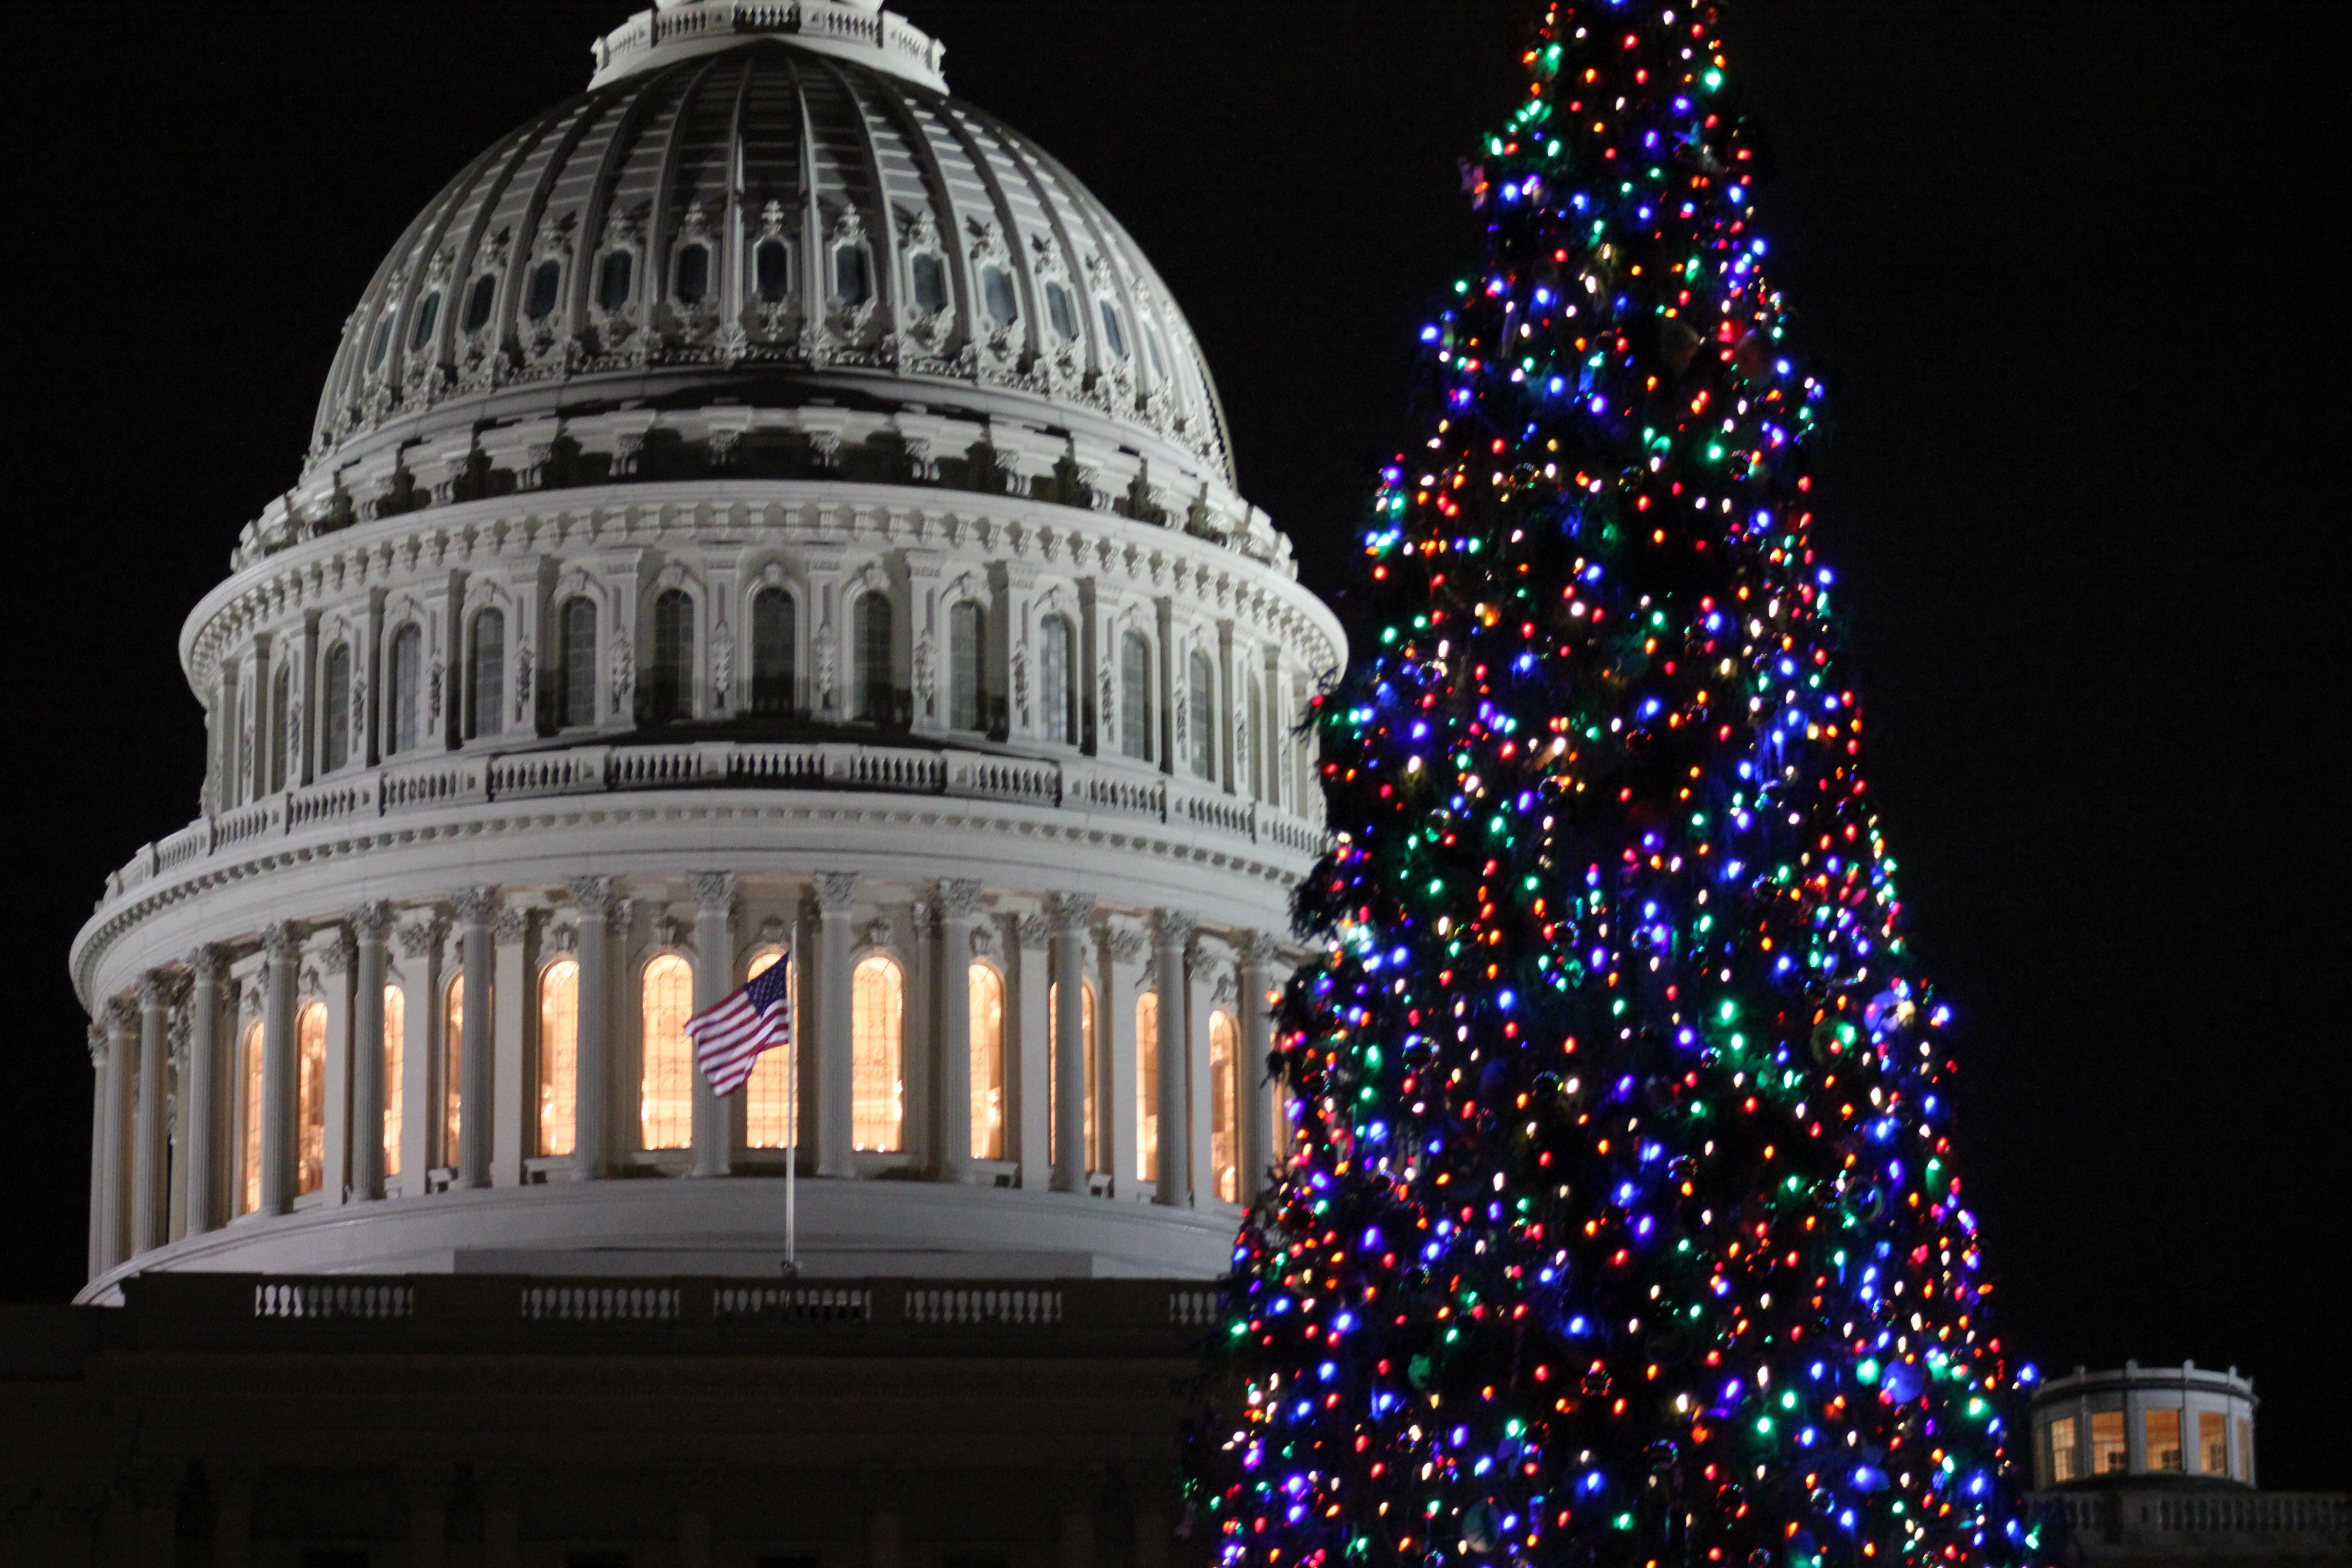 Holiday decorations shine in front of the US Capitol